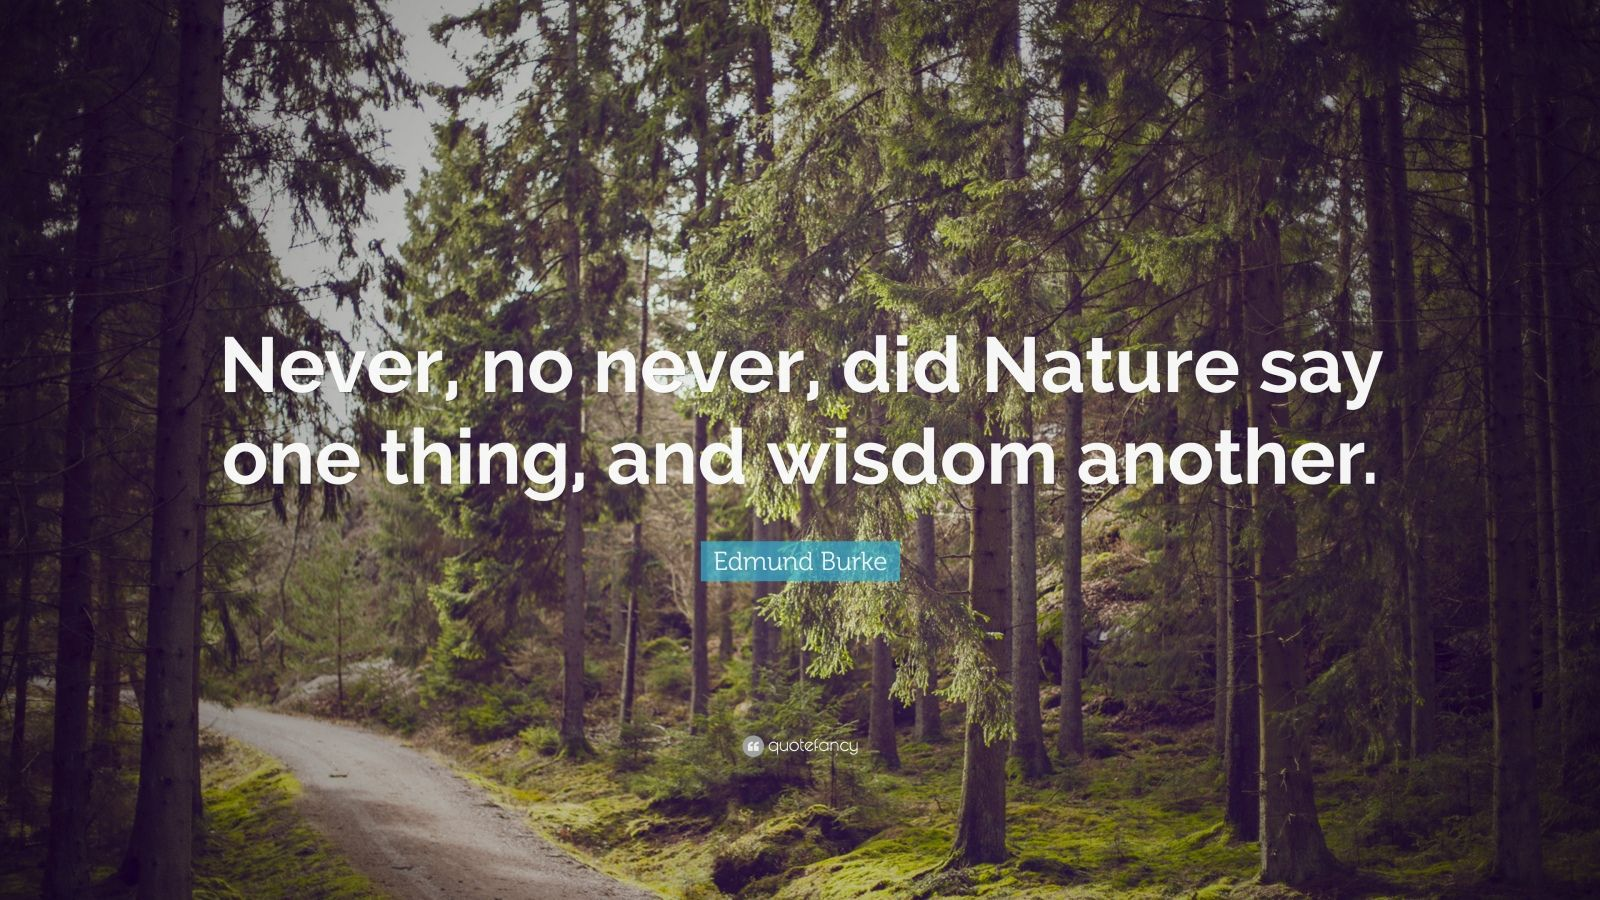 """Edmund Burke Quote: """"Never, no never, did Nature say one thing, and wisdom another."""""""